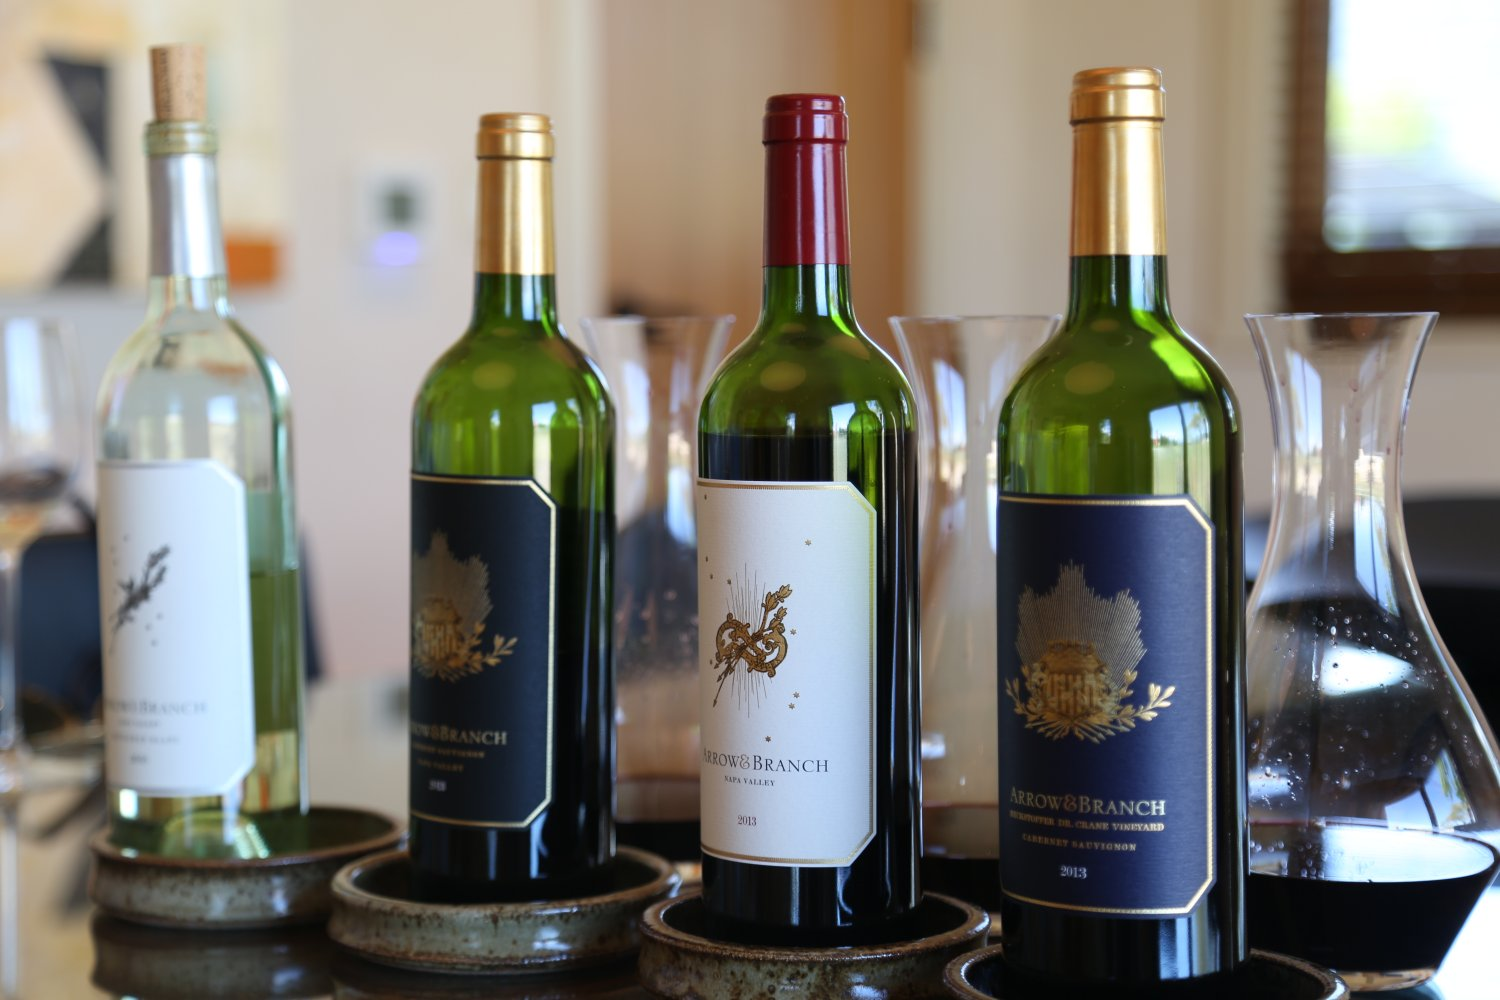 wine project essay Database of example business essays - these essays are the work of our professional essay writers and are free to use to help with your studies.